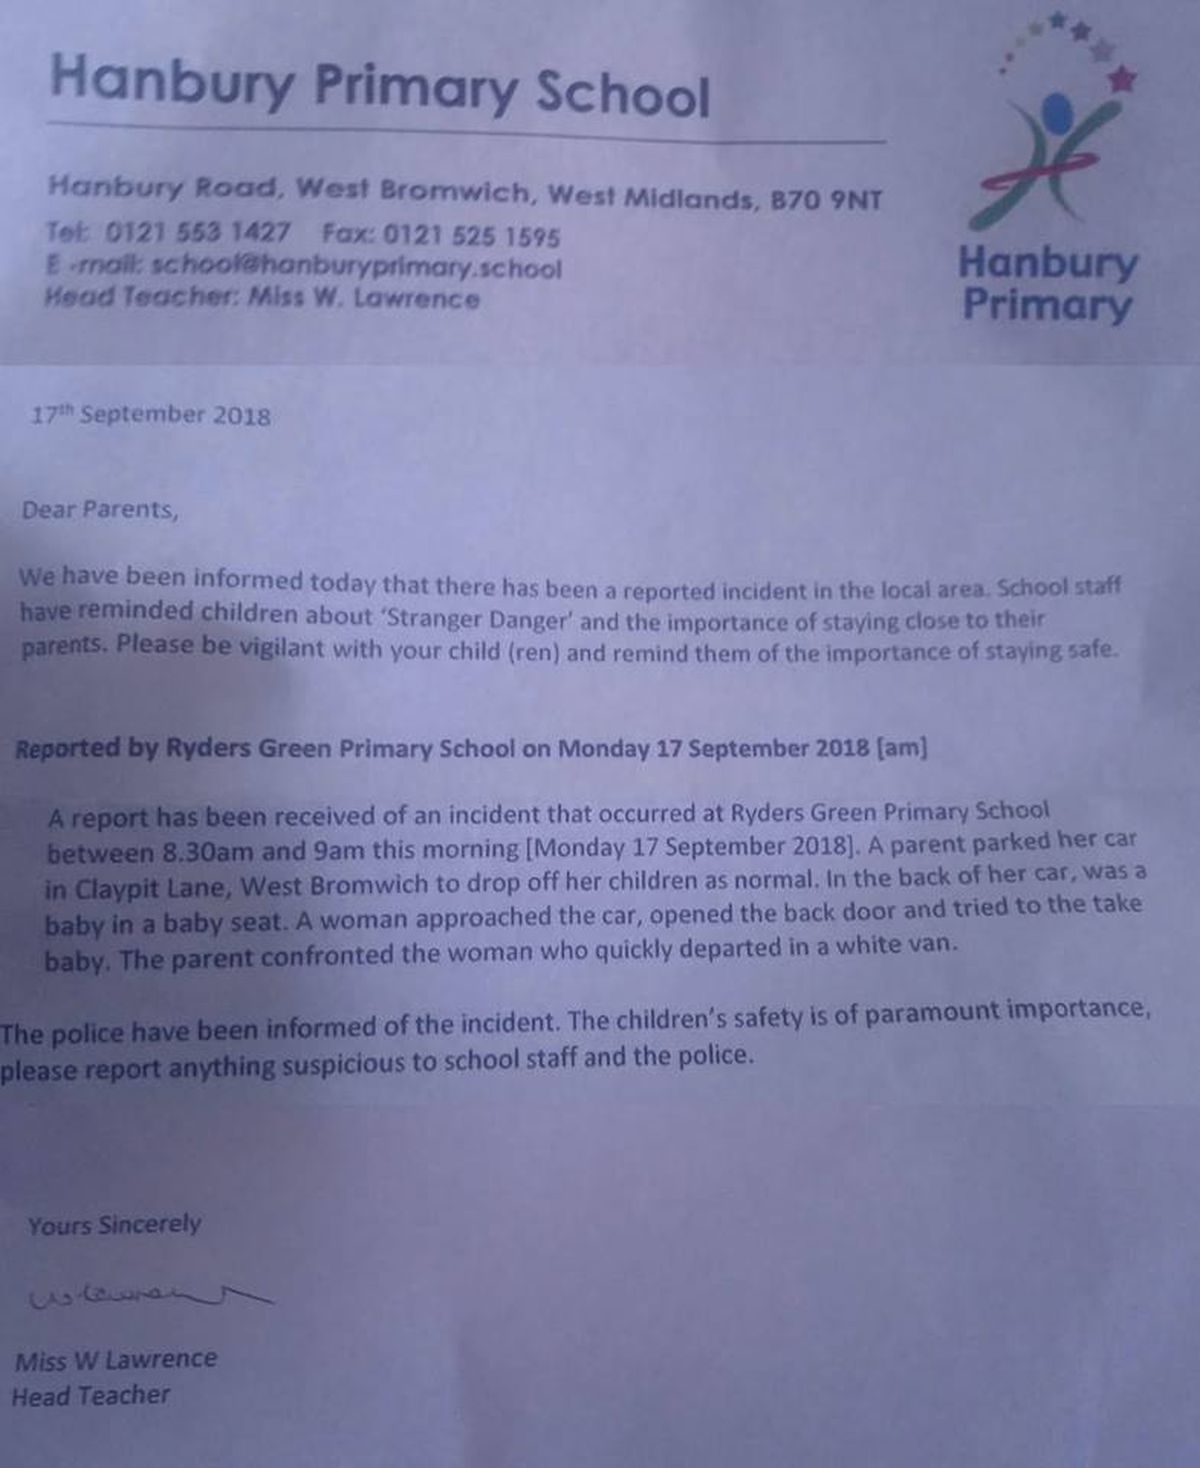 The letter informing parents of the incident